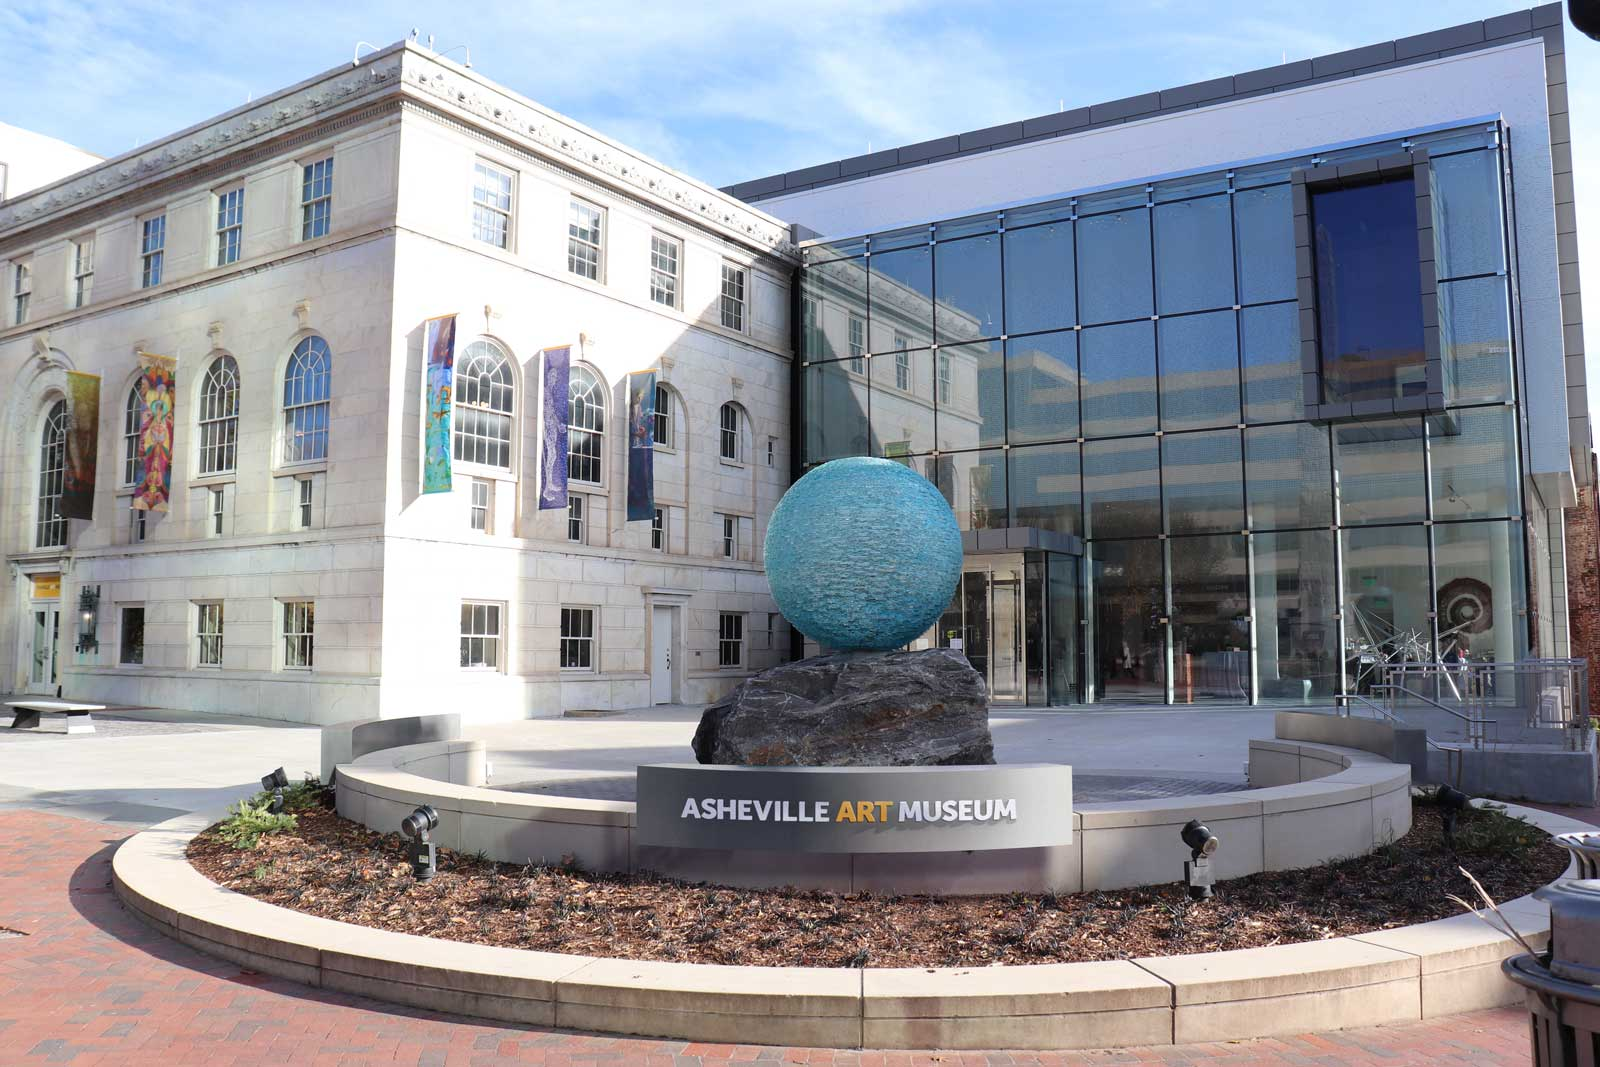 Asheville Art Museum exterior with clear blue morning sky and banner flag signs and entry sign